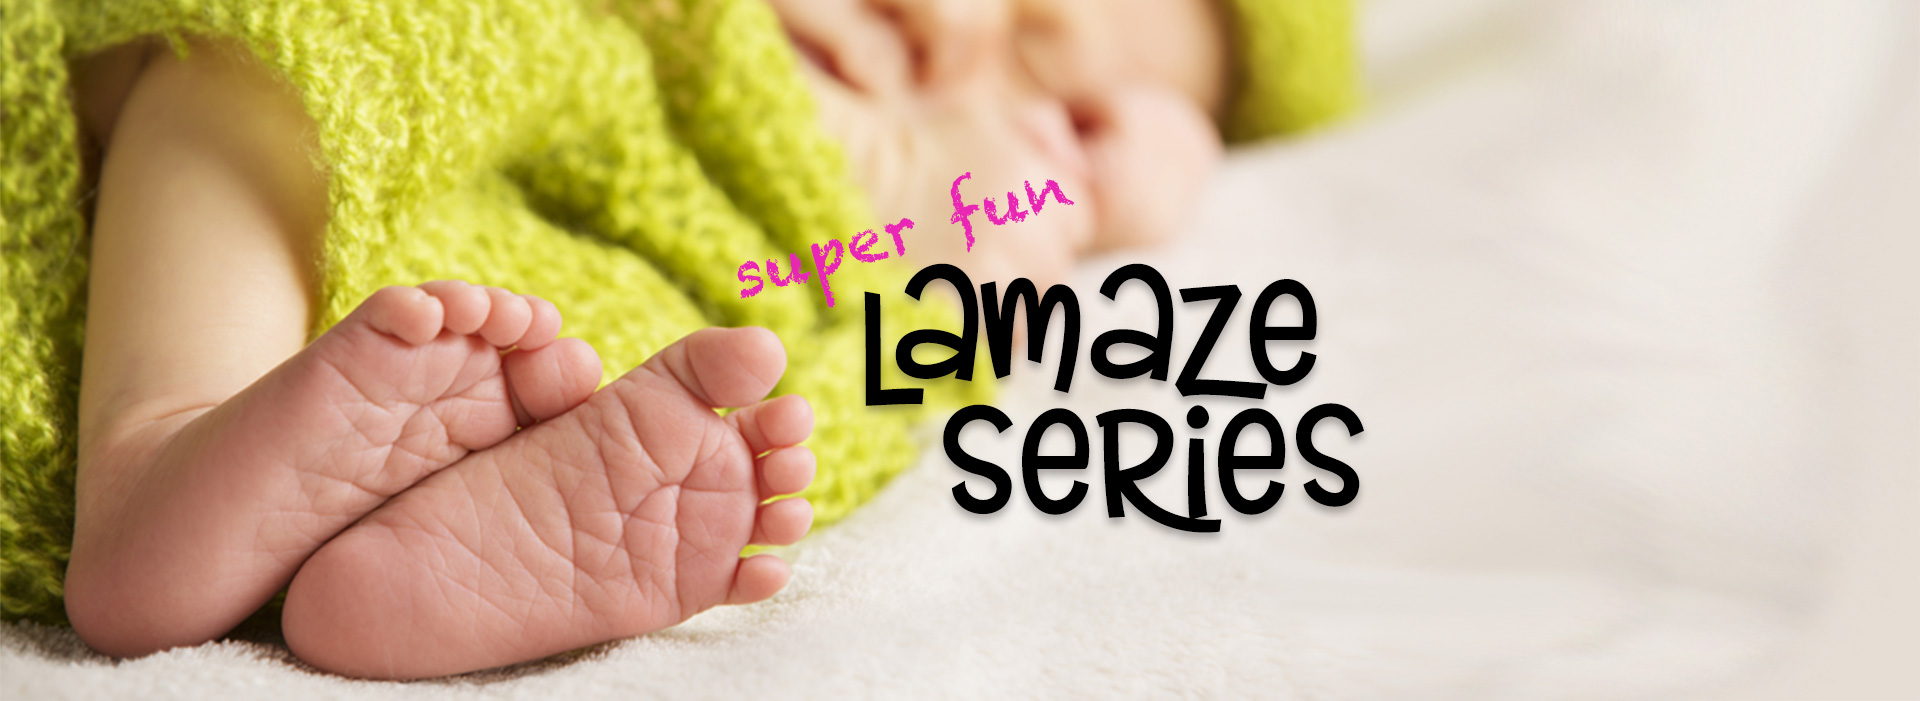 Super Fun Lamaze Series - Temecula Murrieta - Belly Laughs Birth Services - Maggie Jennings